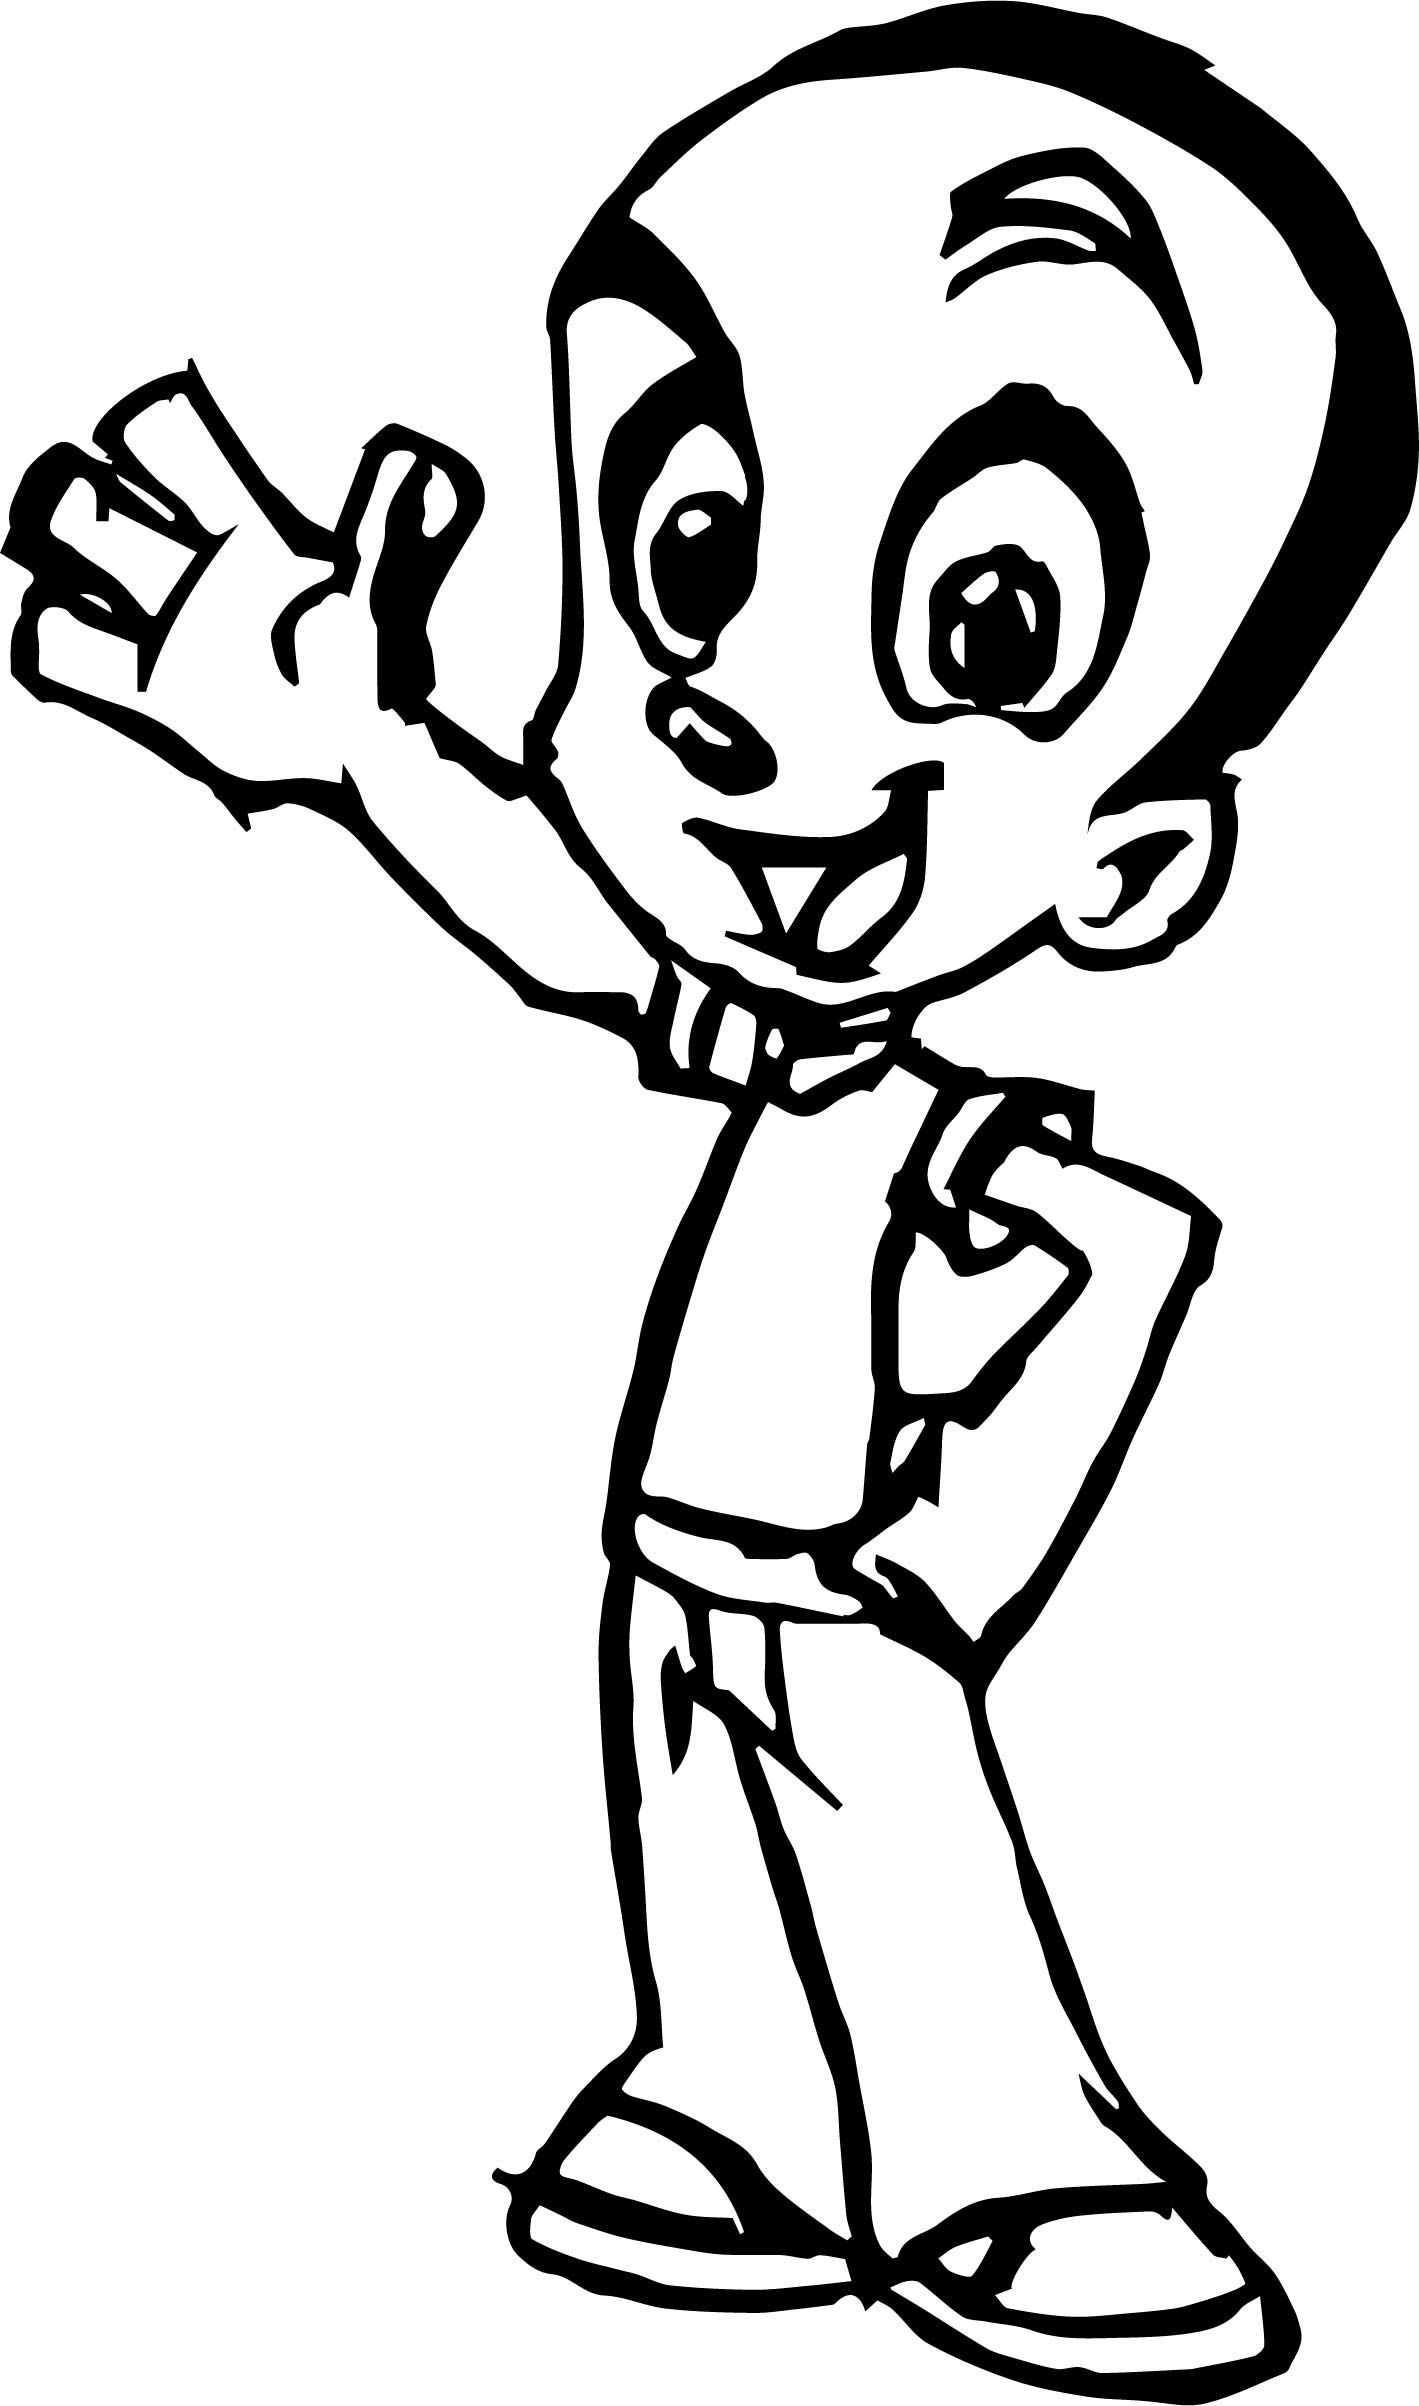 22+ Cartoon character coloring pages info